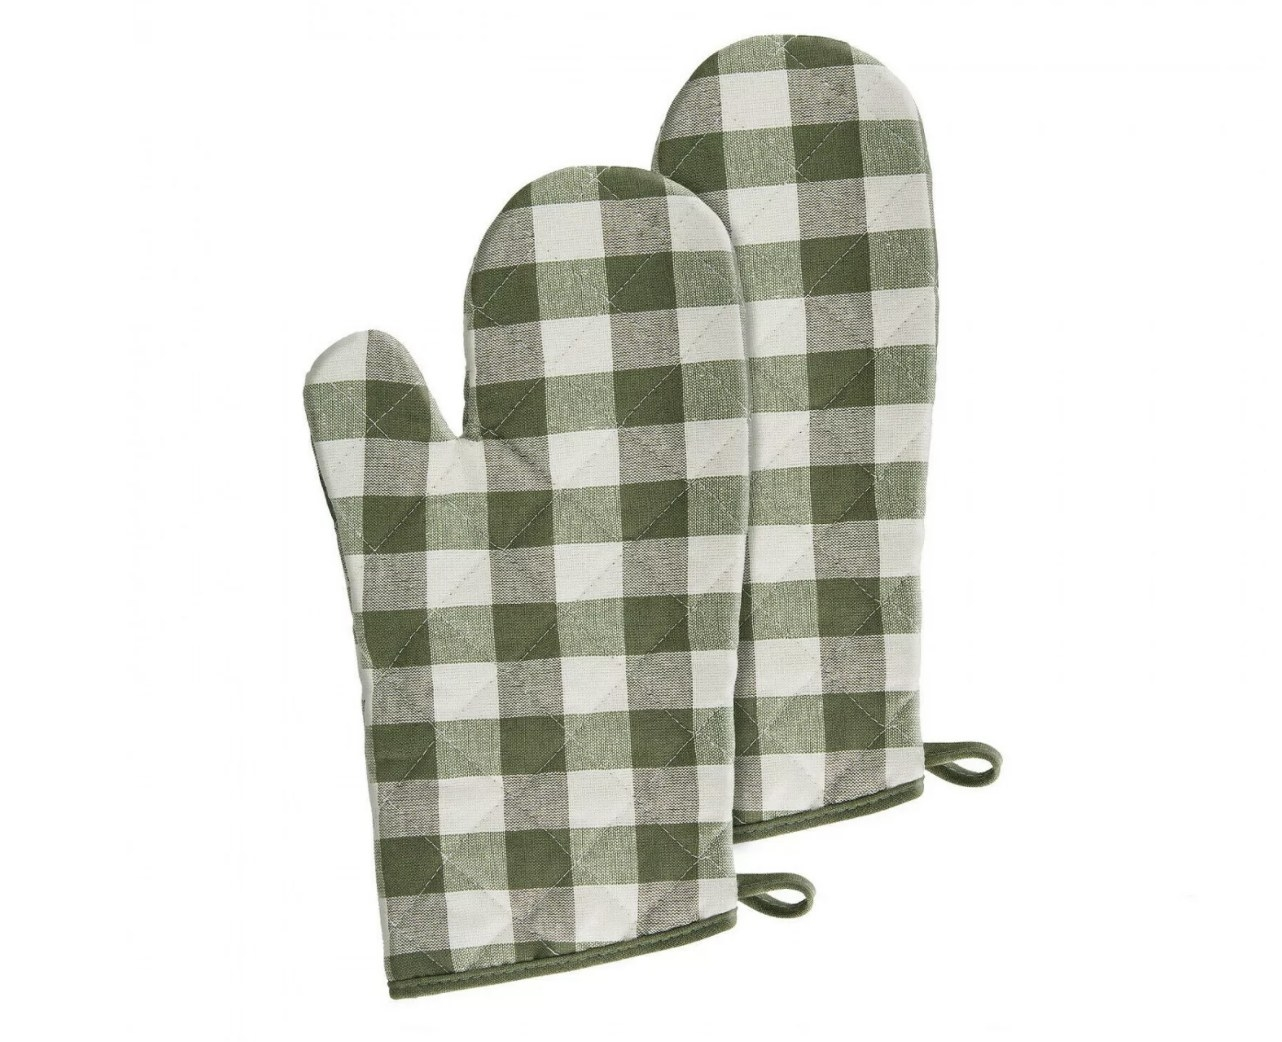 the oven mitts in green checkered pattern